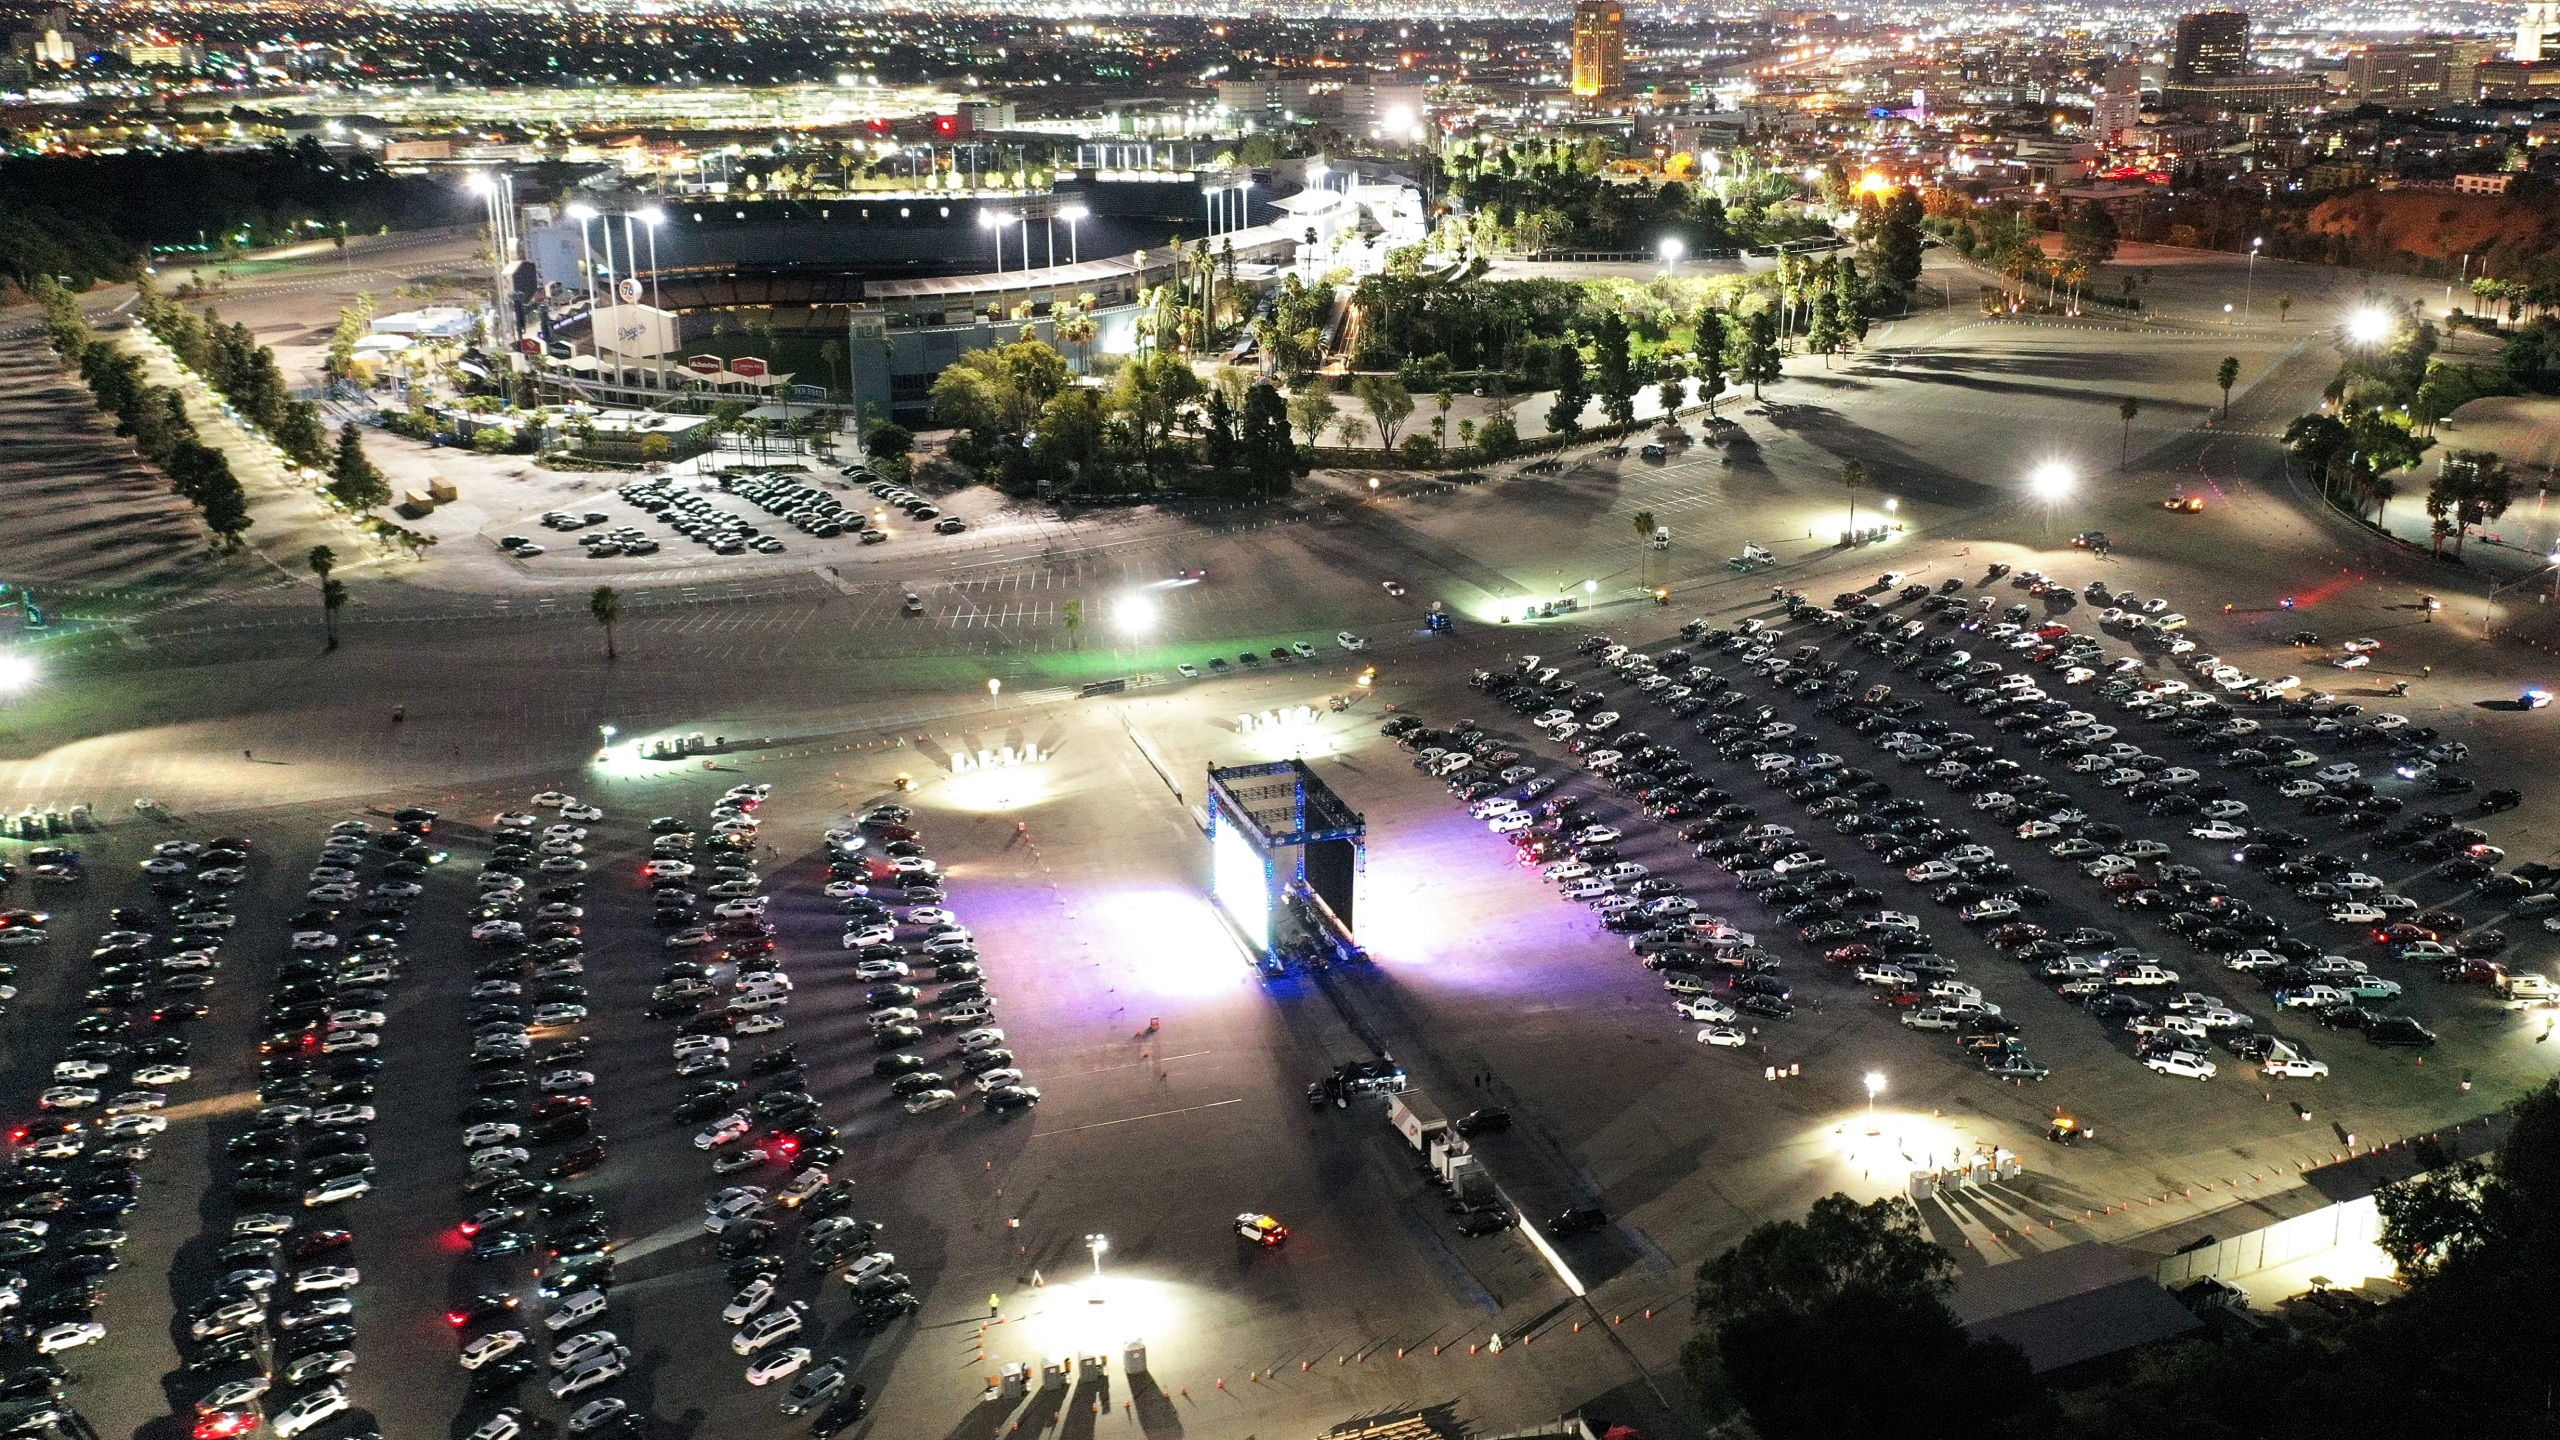 An aerial view of baseball fans attending a drive-in screening of Game 5 of the 2020 World Series between the Los Angeles Dodgers and the Tampa Bay Rays at a Dodger Stadium parking lot on Oct. 25, 2020. (Mario Tama/Getty Images)